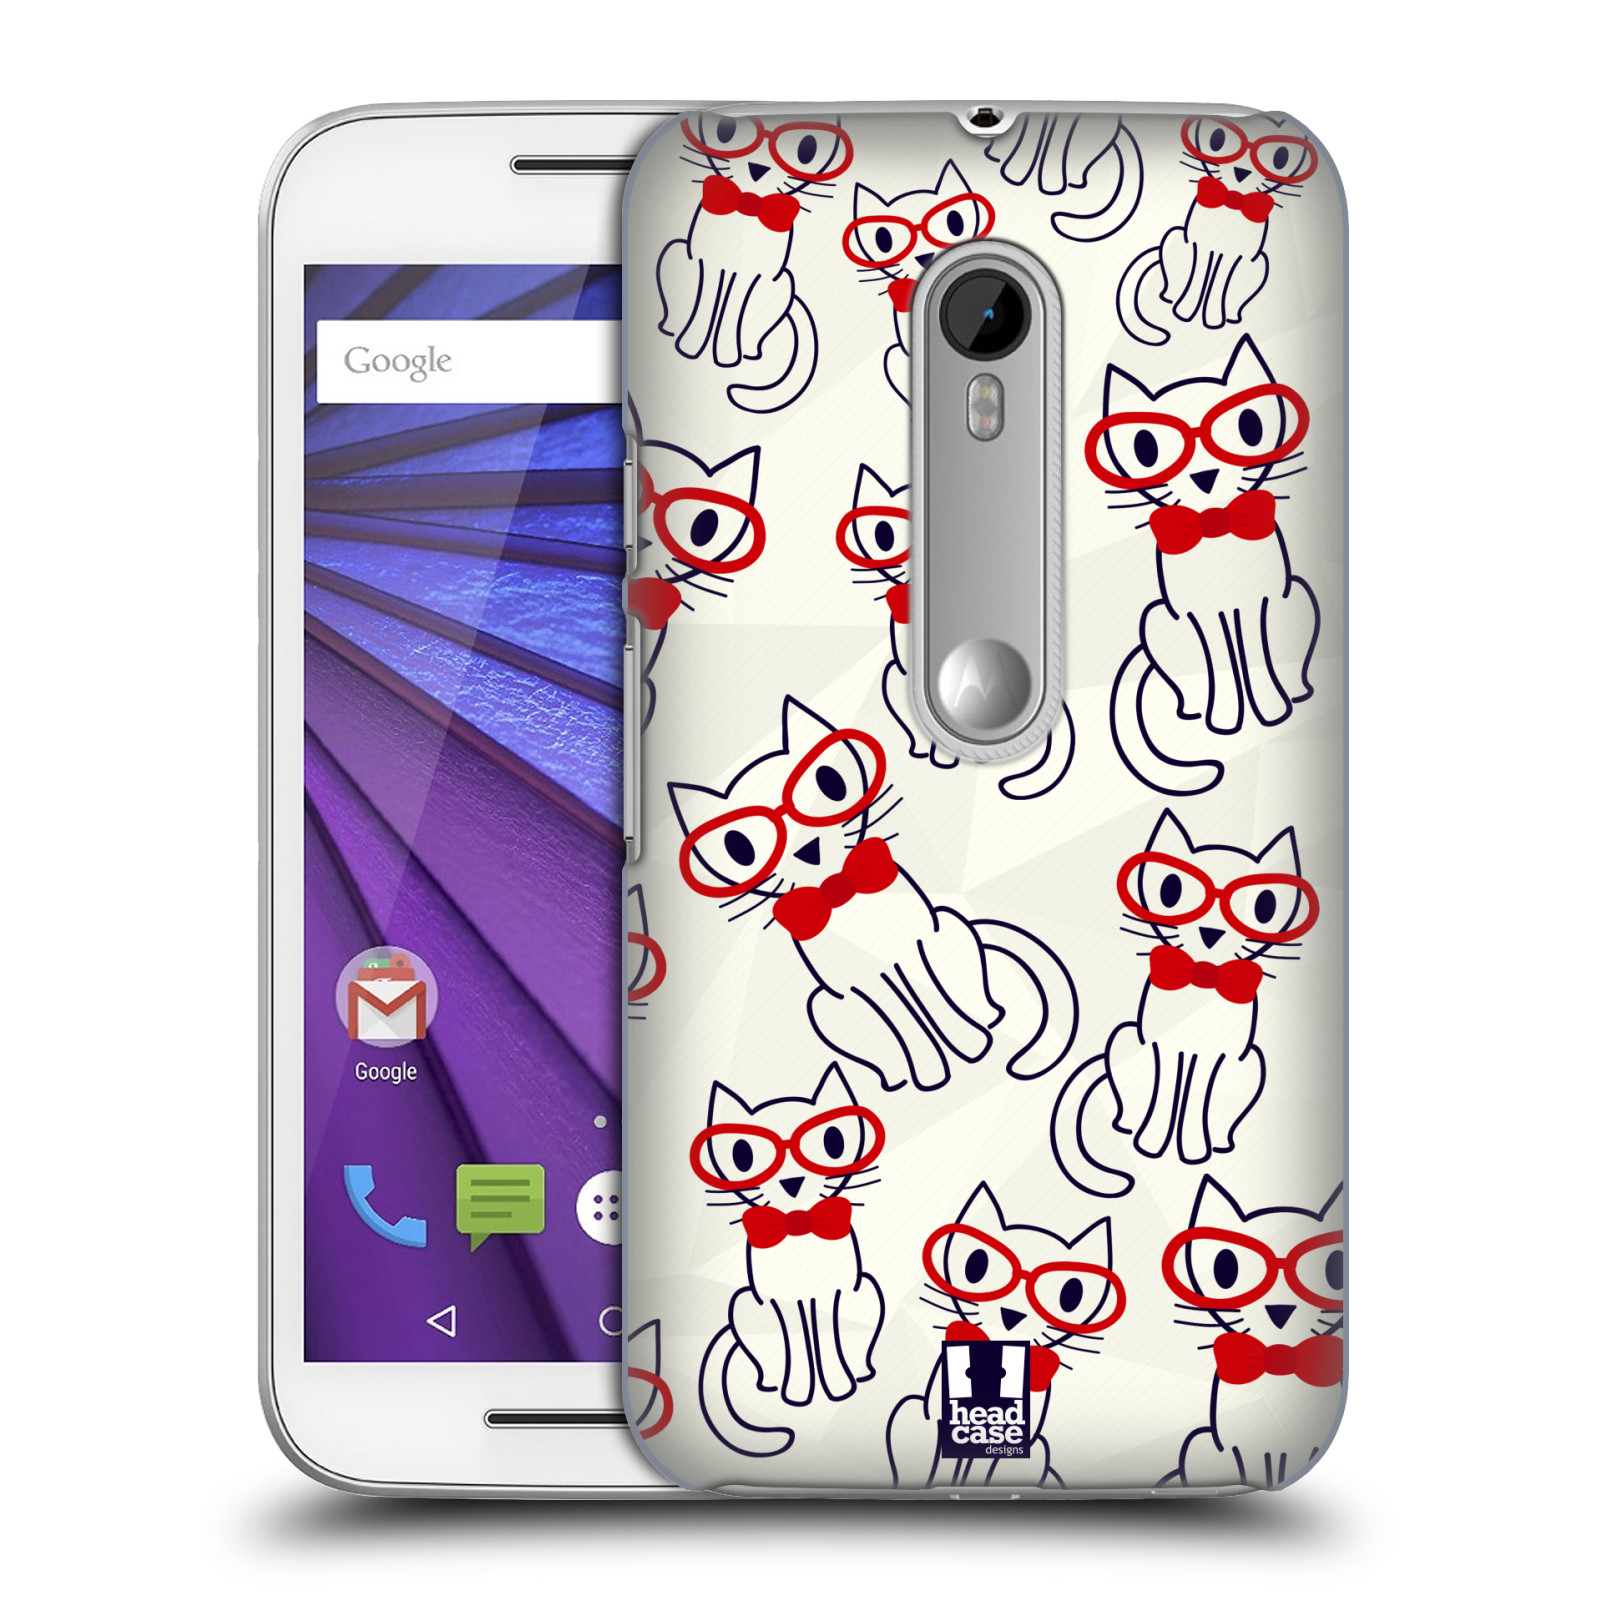 Head case designs cute geeky hard back case for motorola for Cell phone cover design ideas